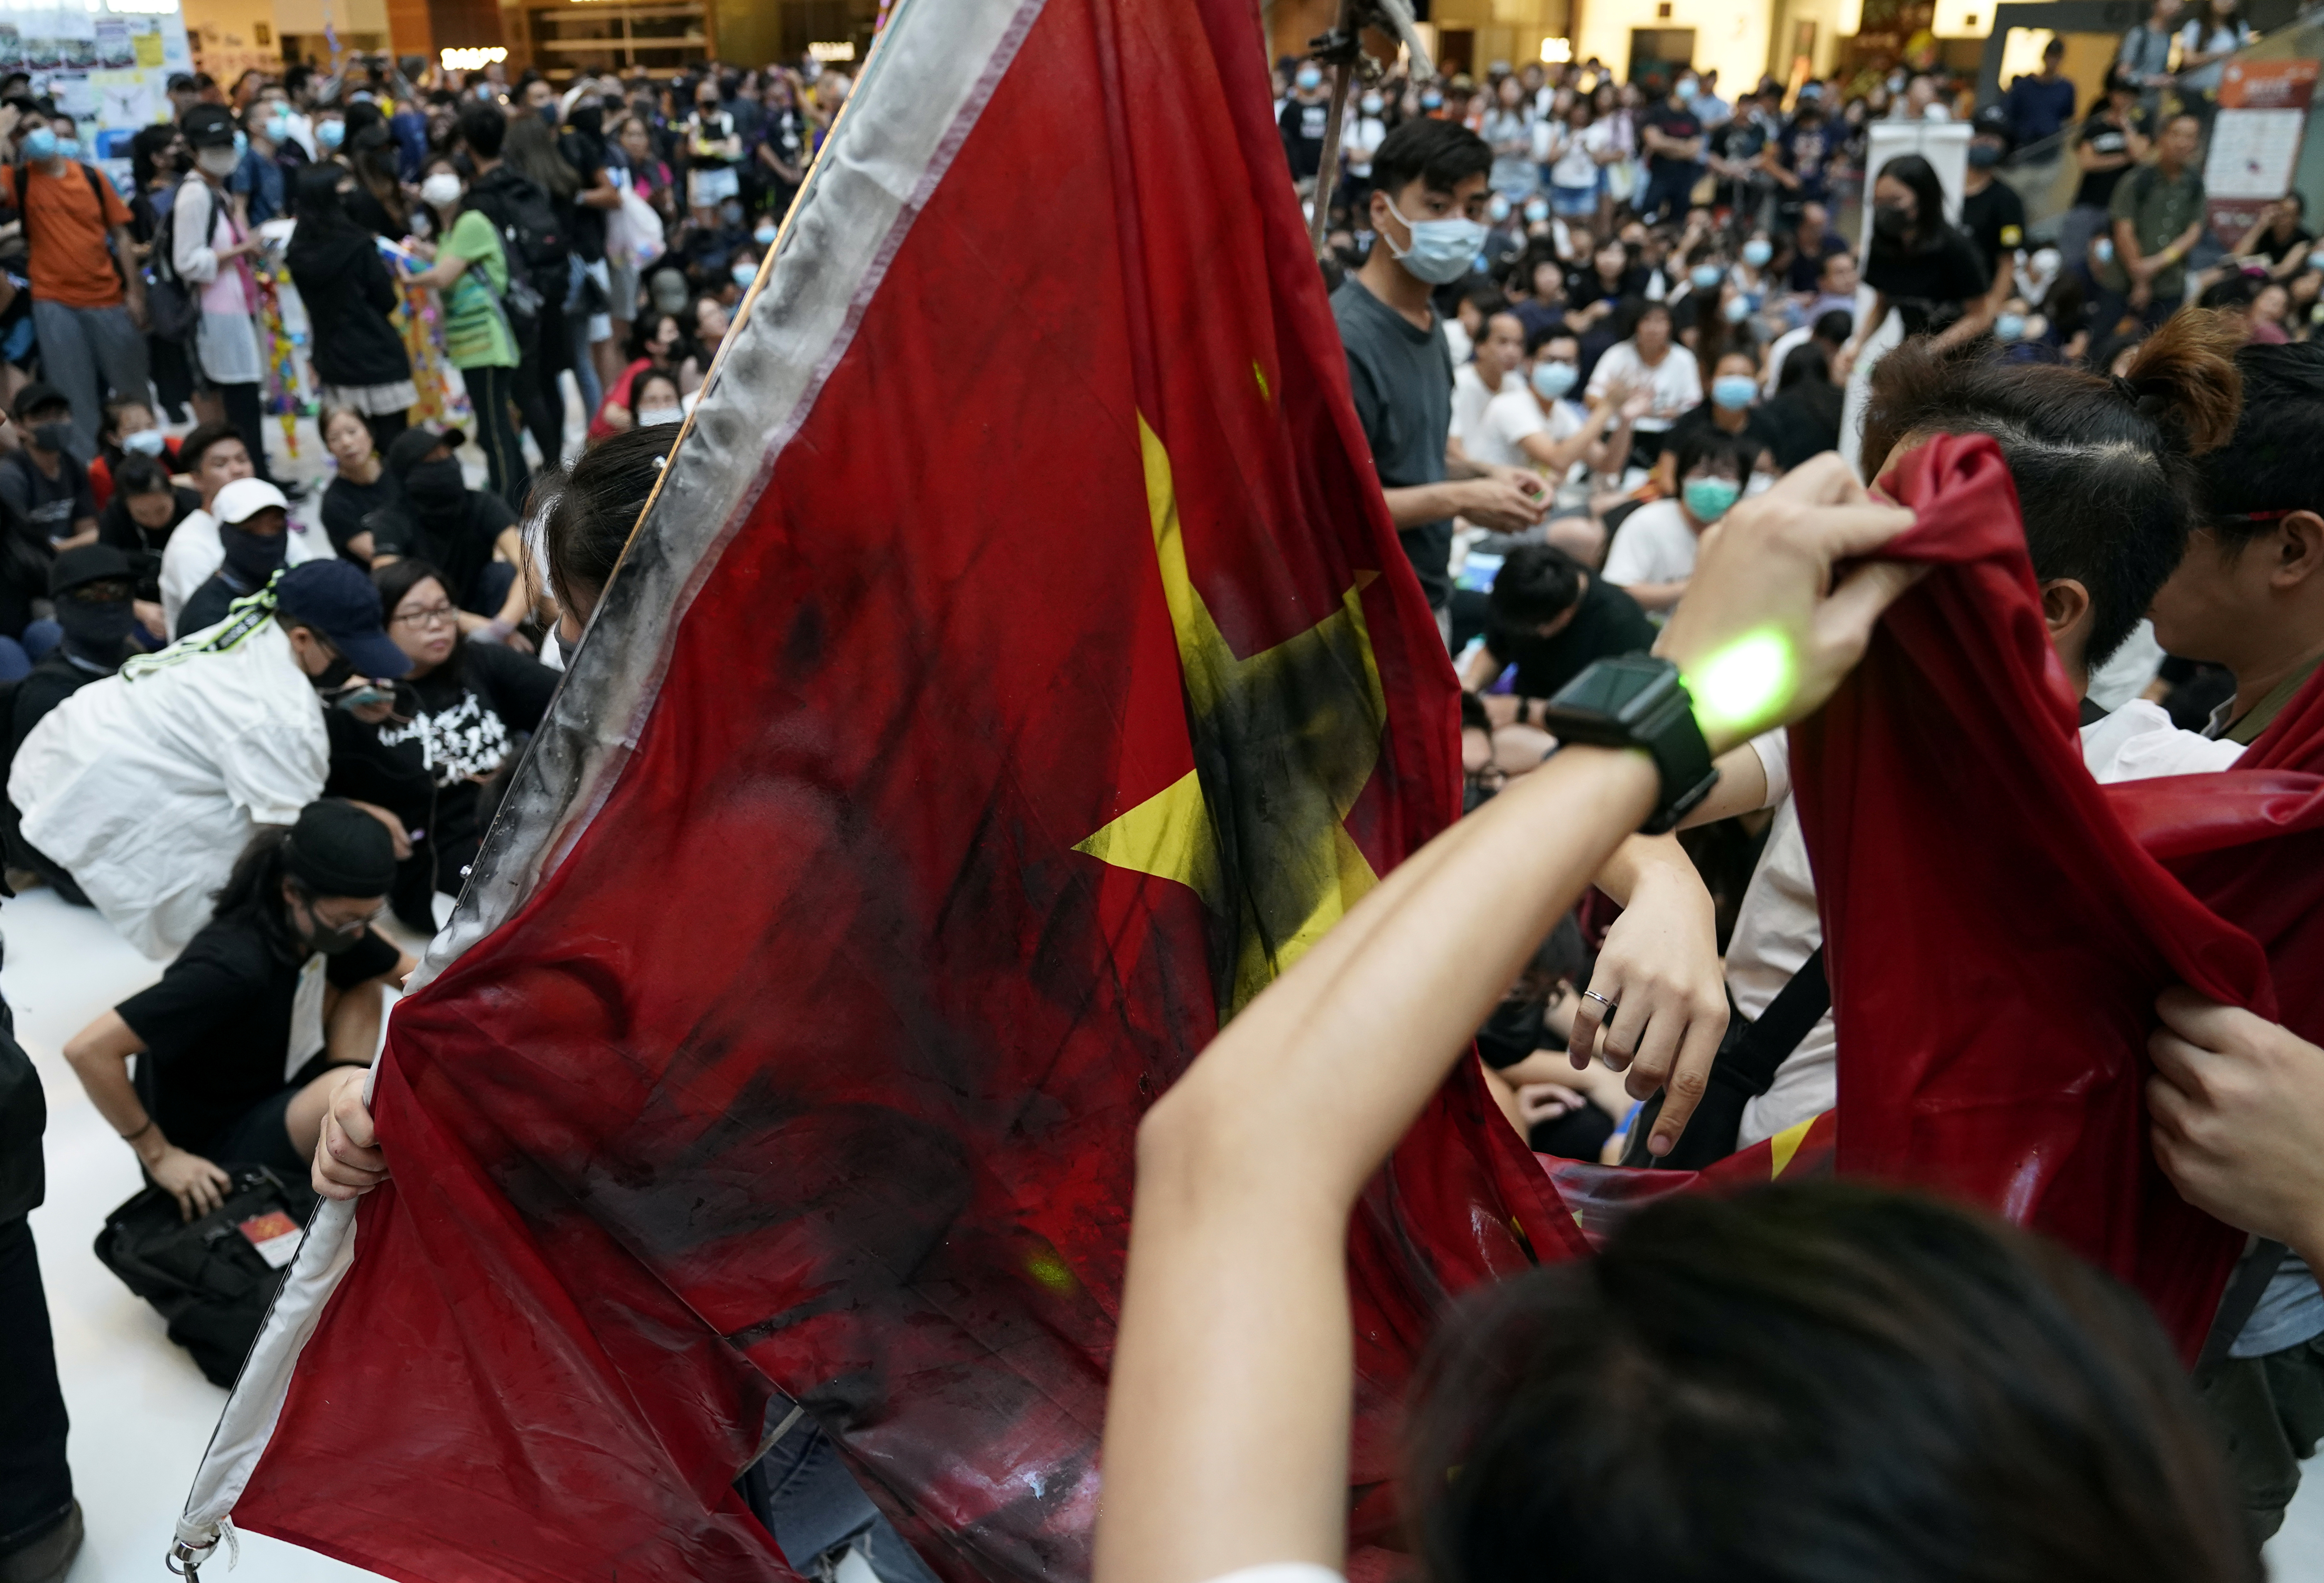 Anti-government protesters destroy a Chinese flag during a rally in a shopping mall in Sha Tin, Hong Kong, China September 22, 2019.